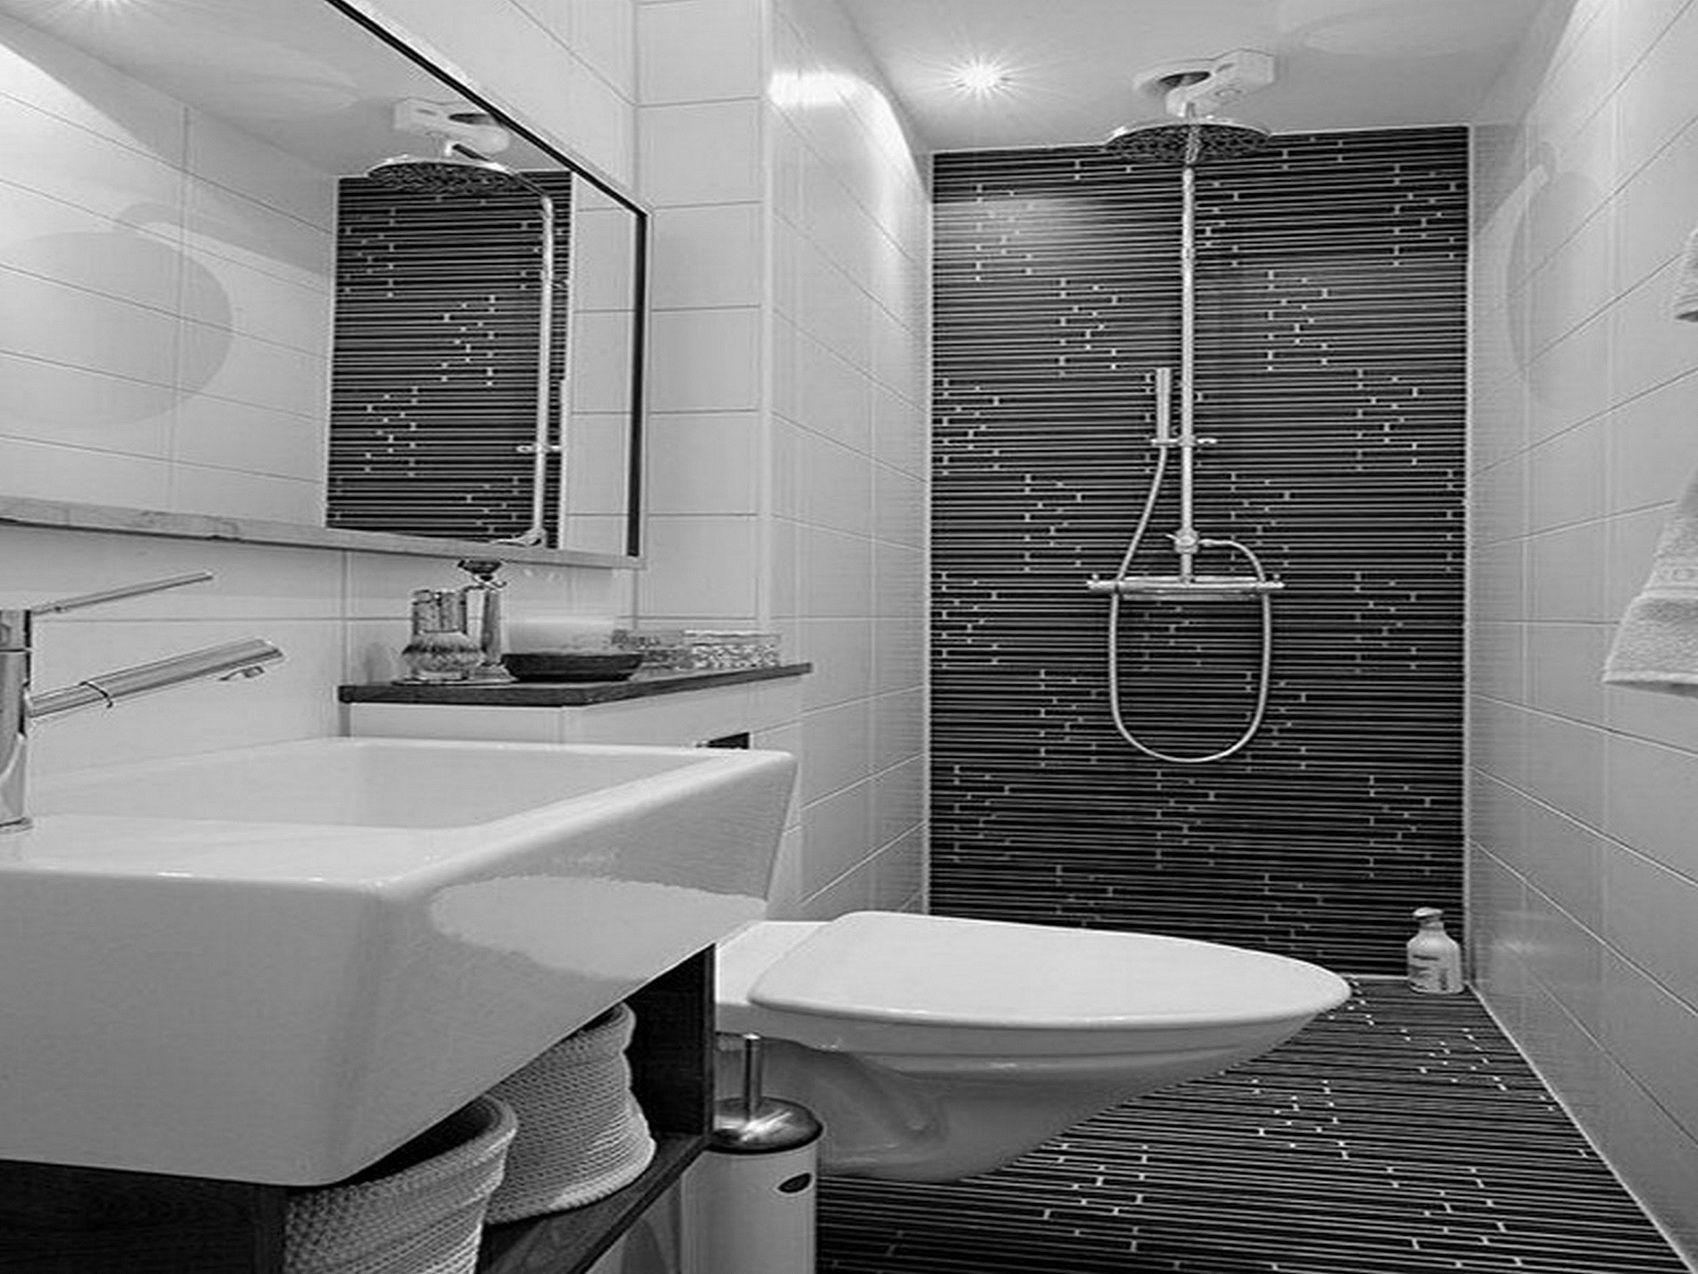 Black Tiles In Bathroom Ideas Nola Designs Part 28